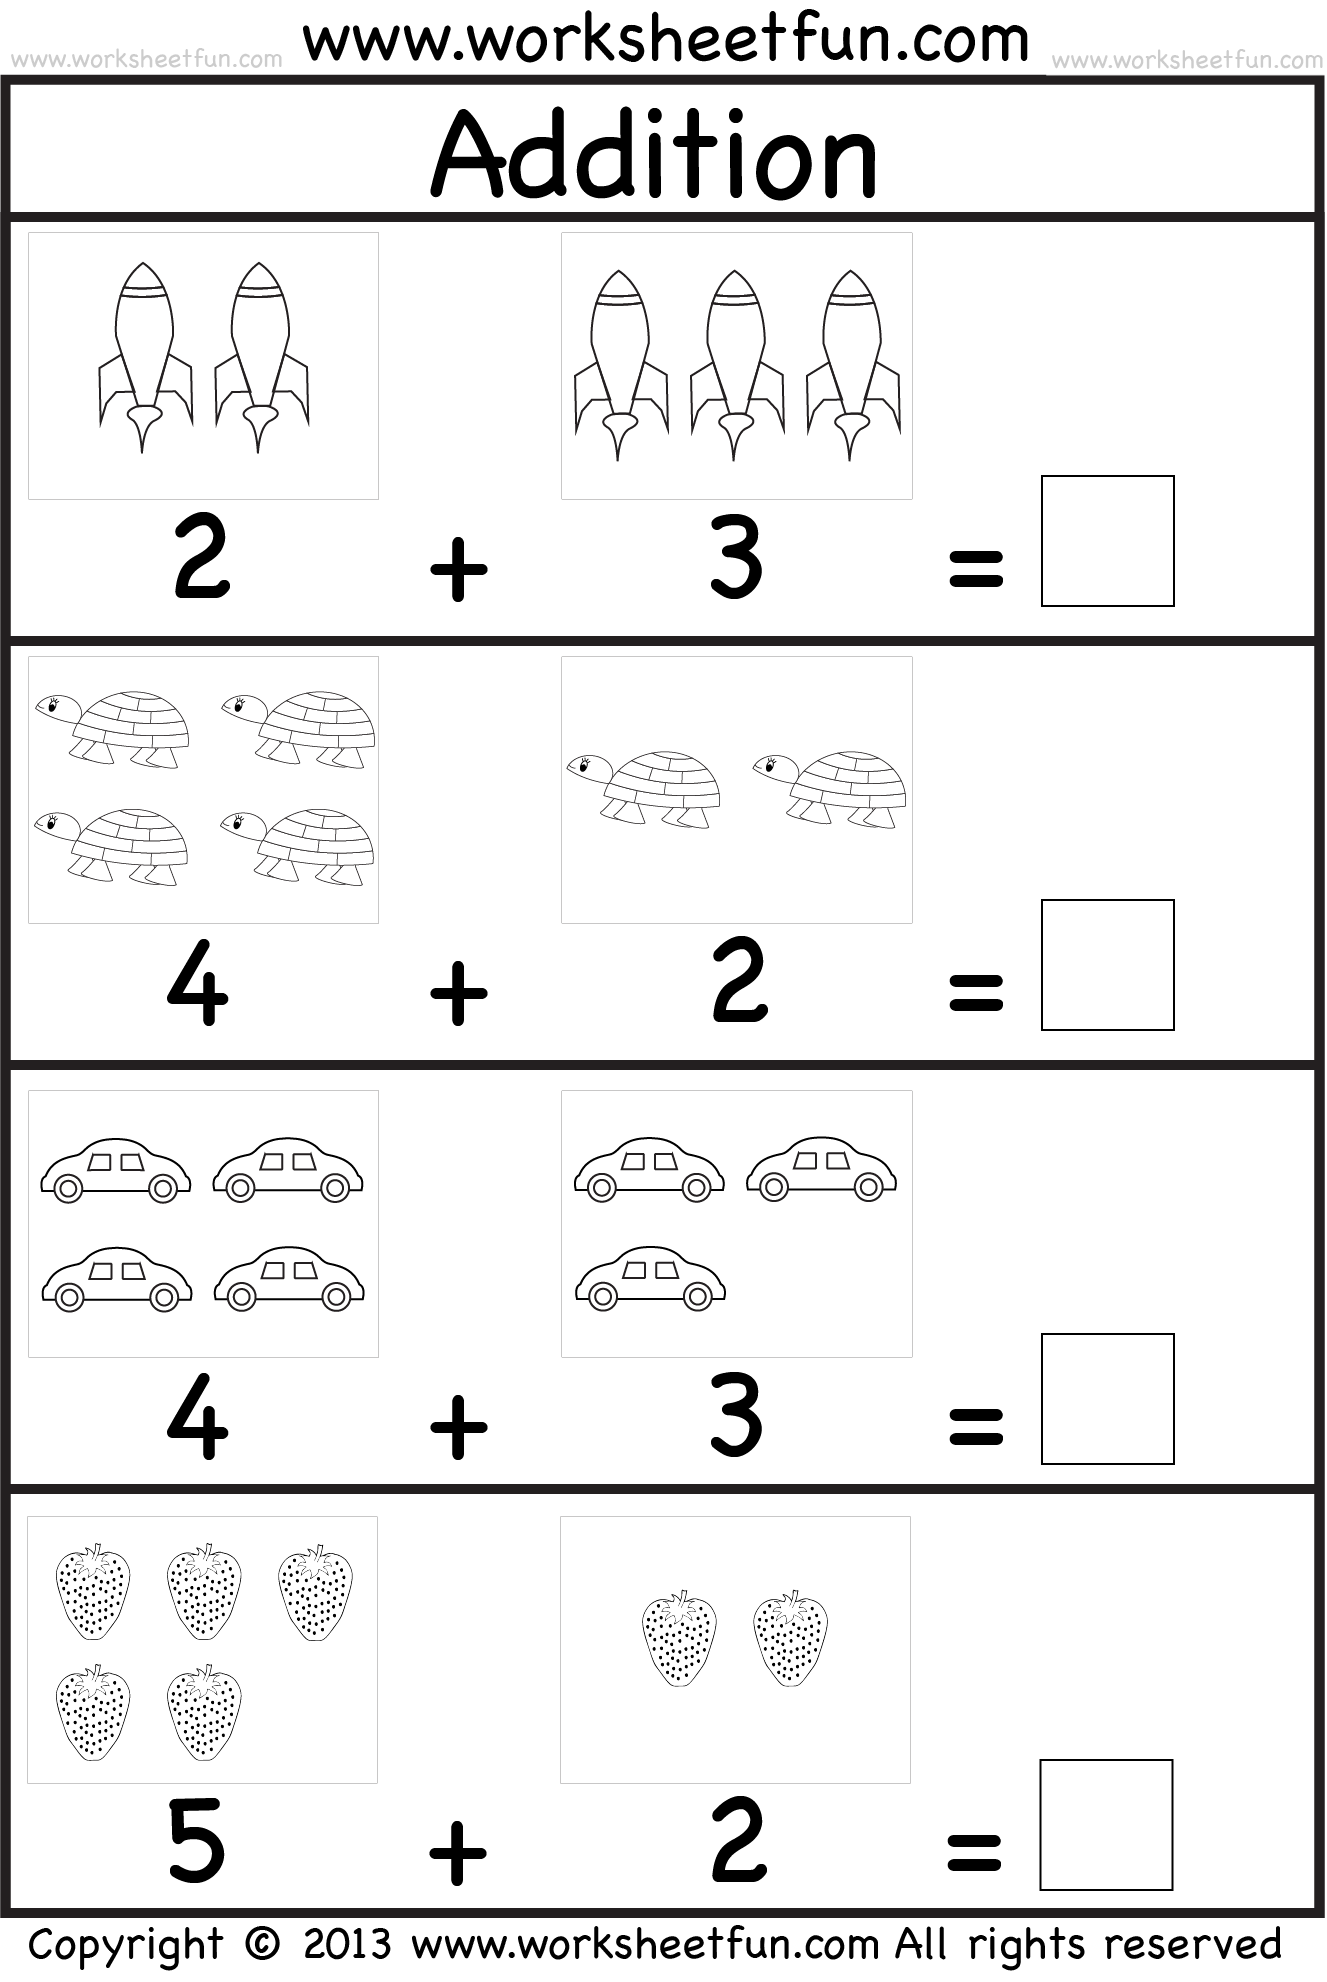 Addition Worksheets For Kindergarten With Pictures The Best